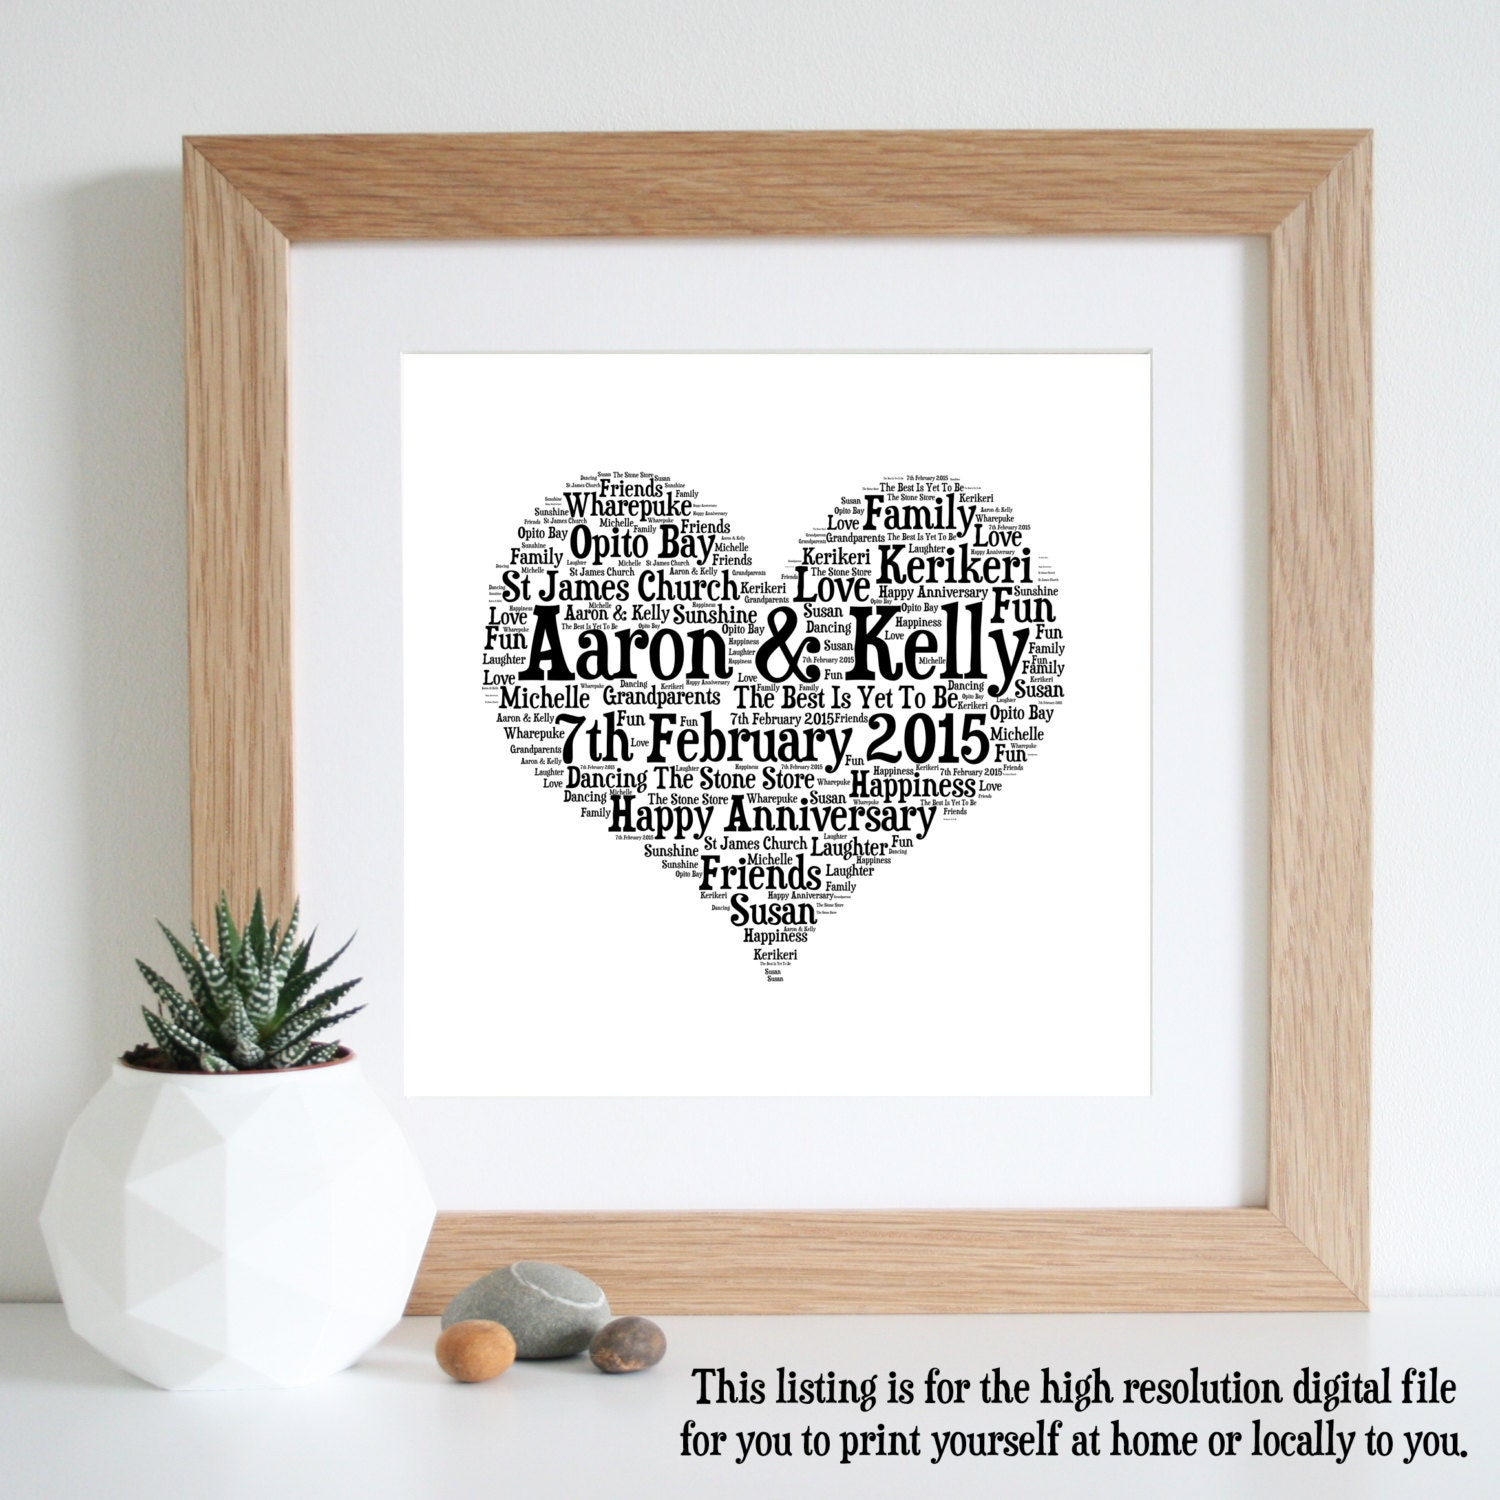 First Wedding Anniversary Gift Ideas South Africa : Ideas Traditional 1st Wedding Anniversary Gifts 1st anniversary gift ...